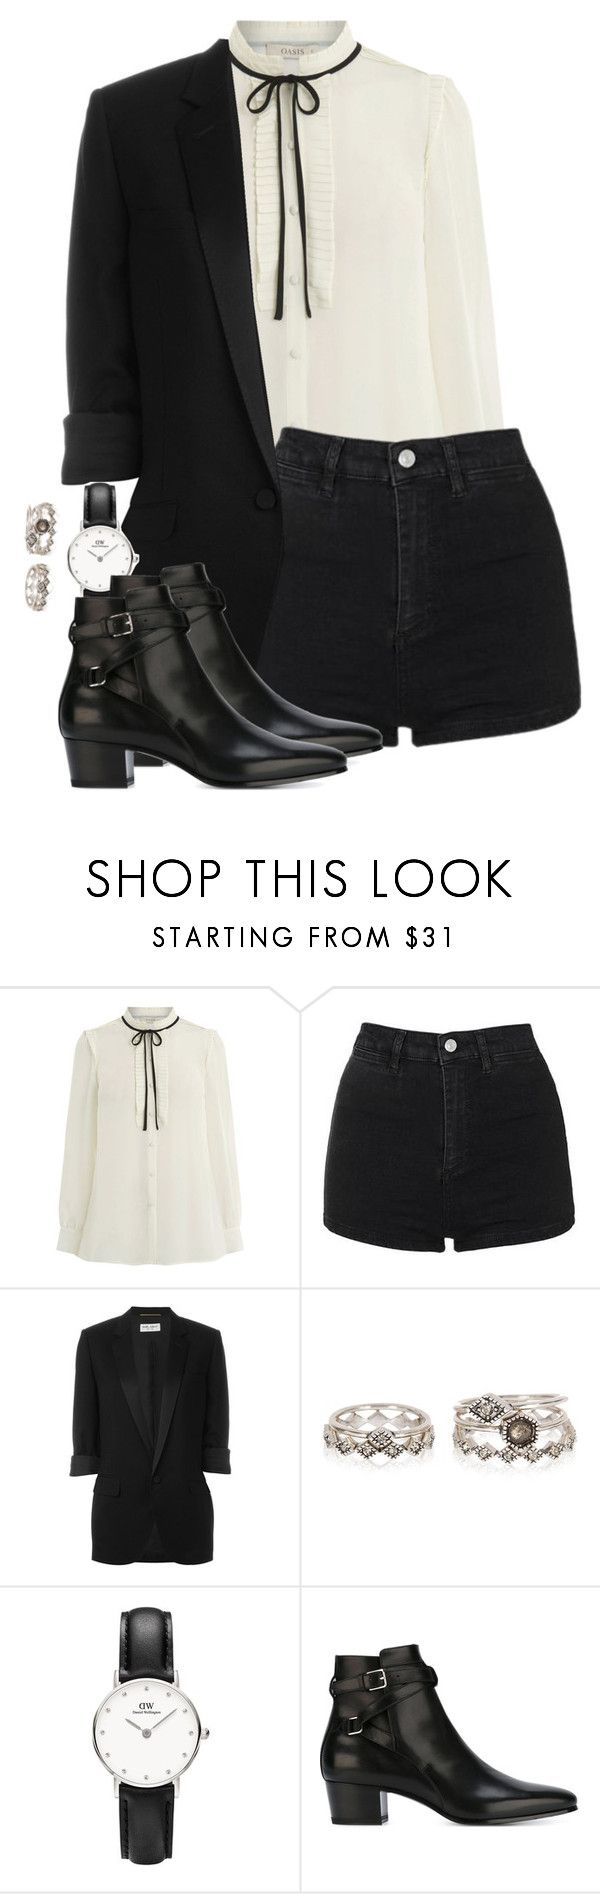 """""""Untitled #15"""" by mikasma ❤ liked on Polyvore featuring Topshop and Yves Saint Laurent"""